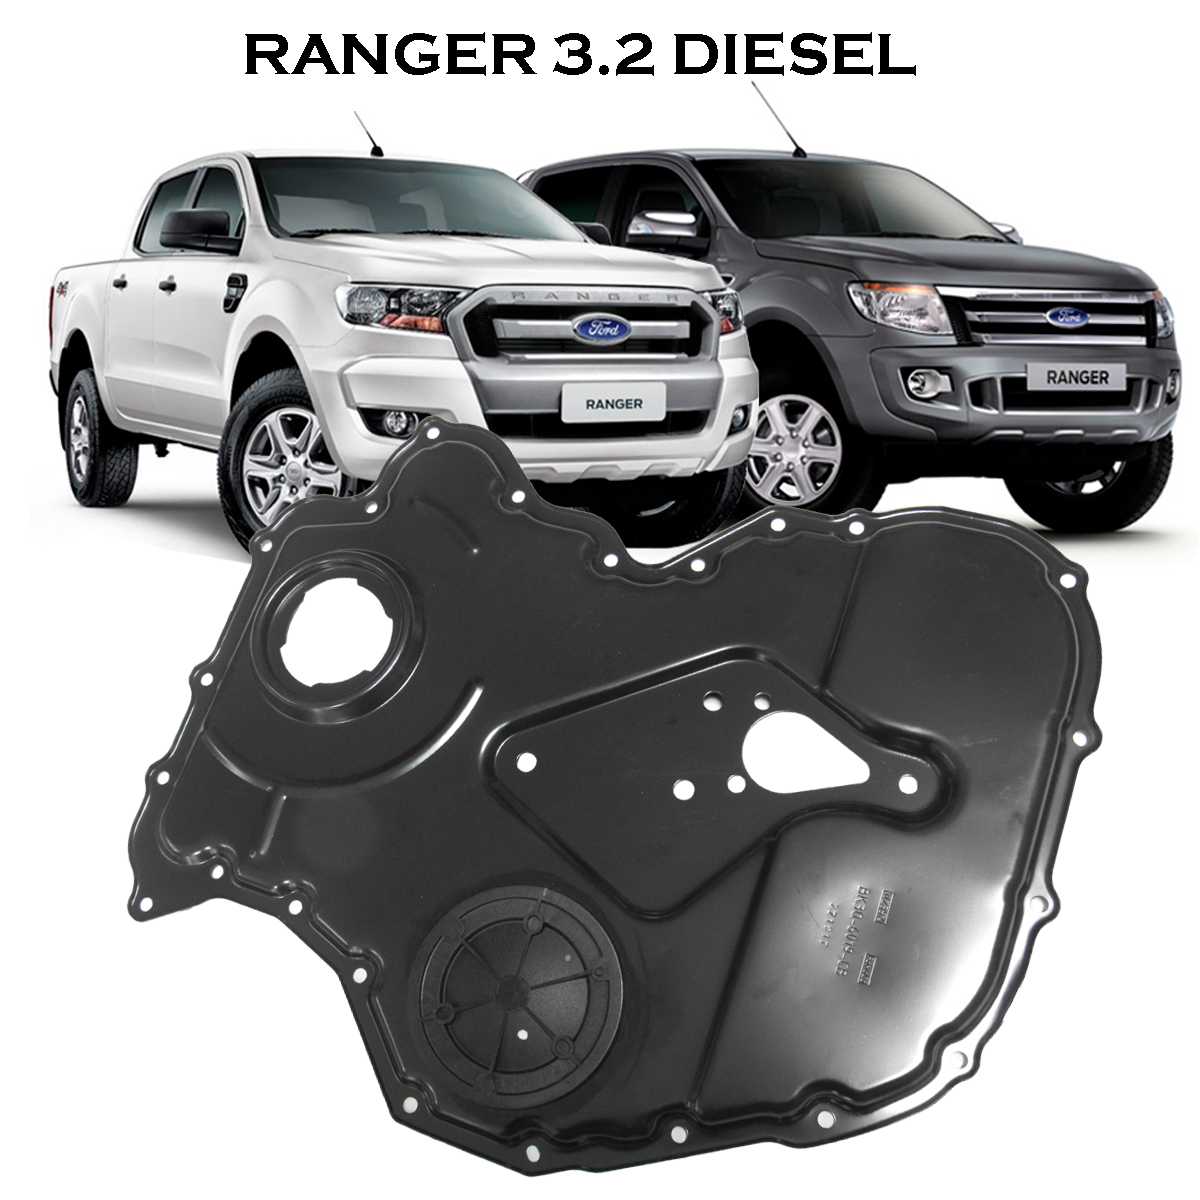 Tampa Frontal do Bloco de Cilindros do Motor ( Ranger 2013 a